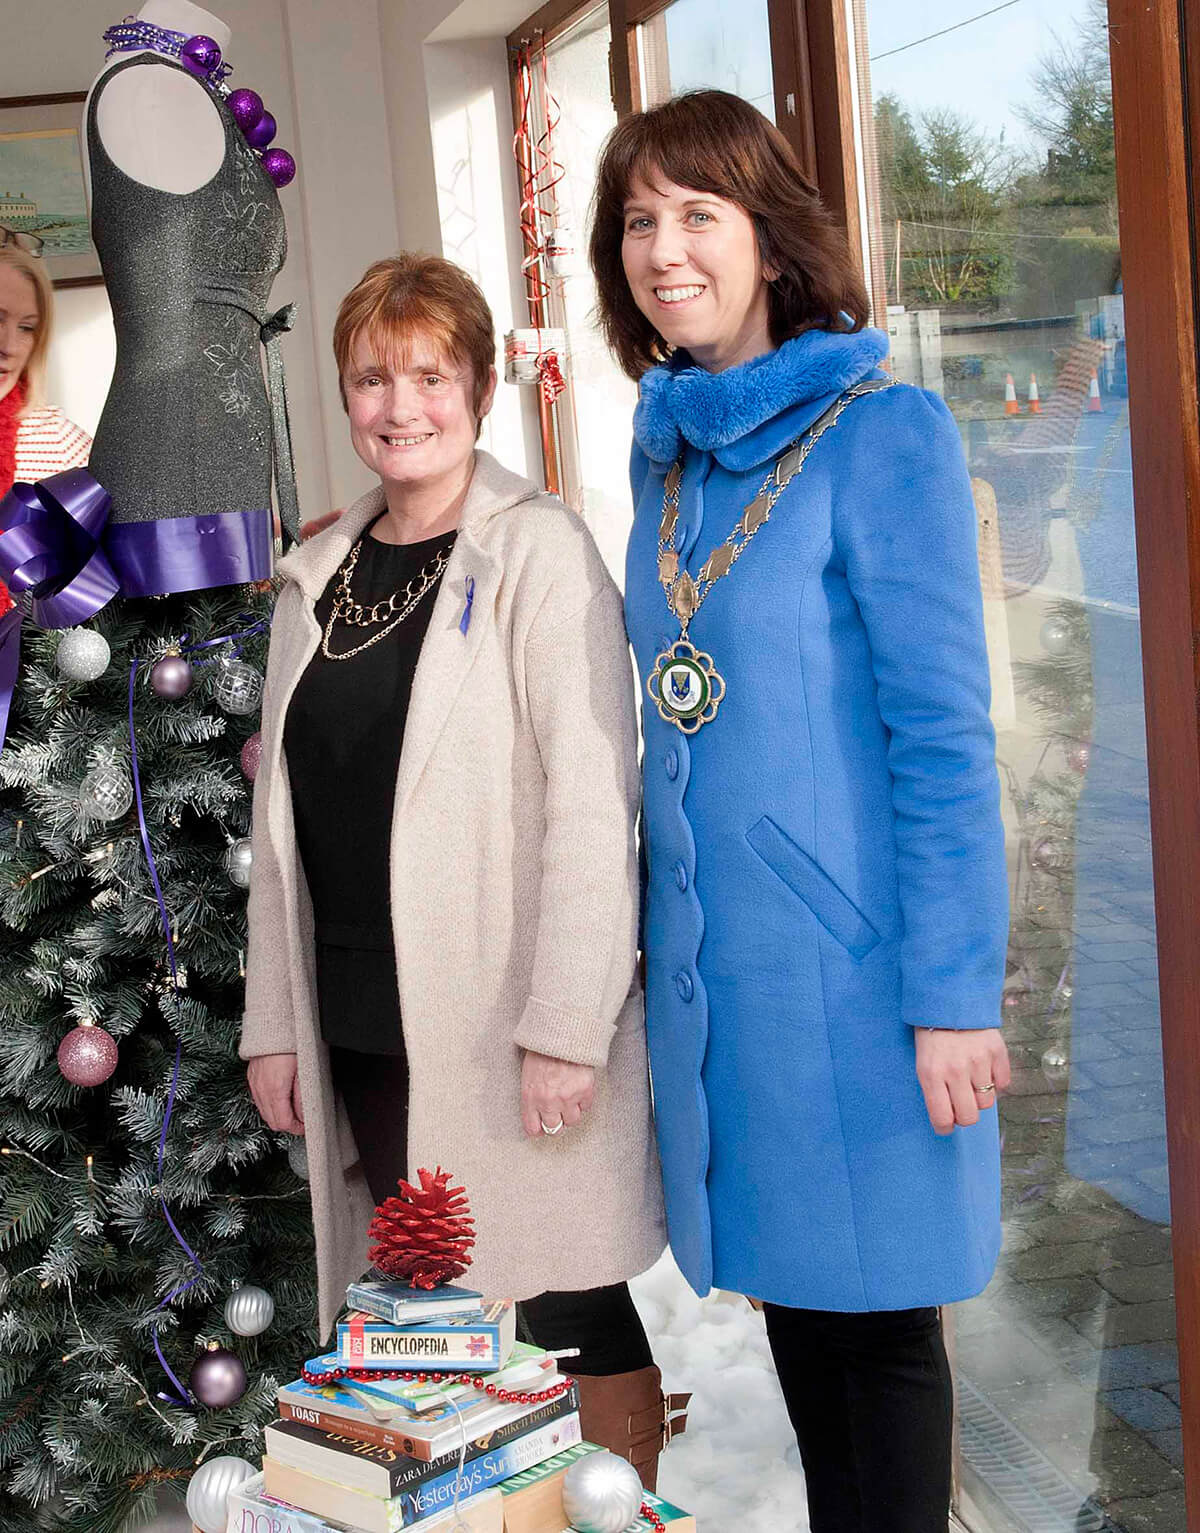 Karen Joyce, RWN Charity Shop Supervisor with Cllr Orla Leyden Caithlaoireach of County Roscommon who officially opened the refurbished shop